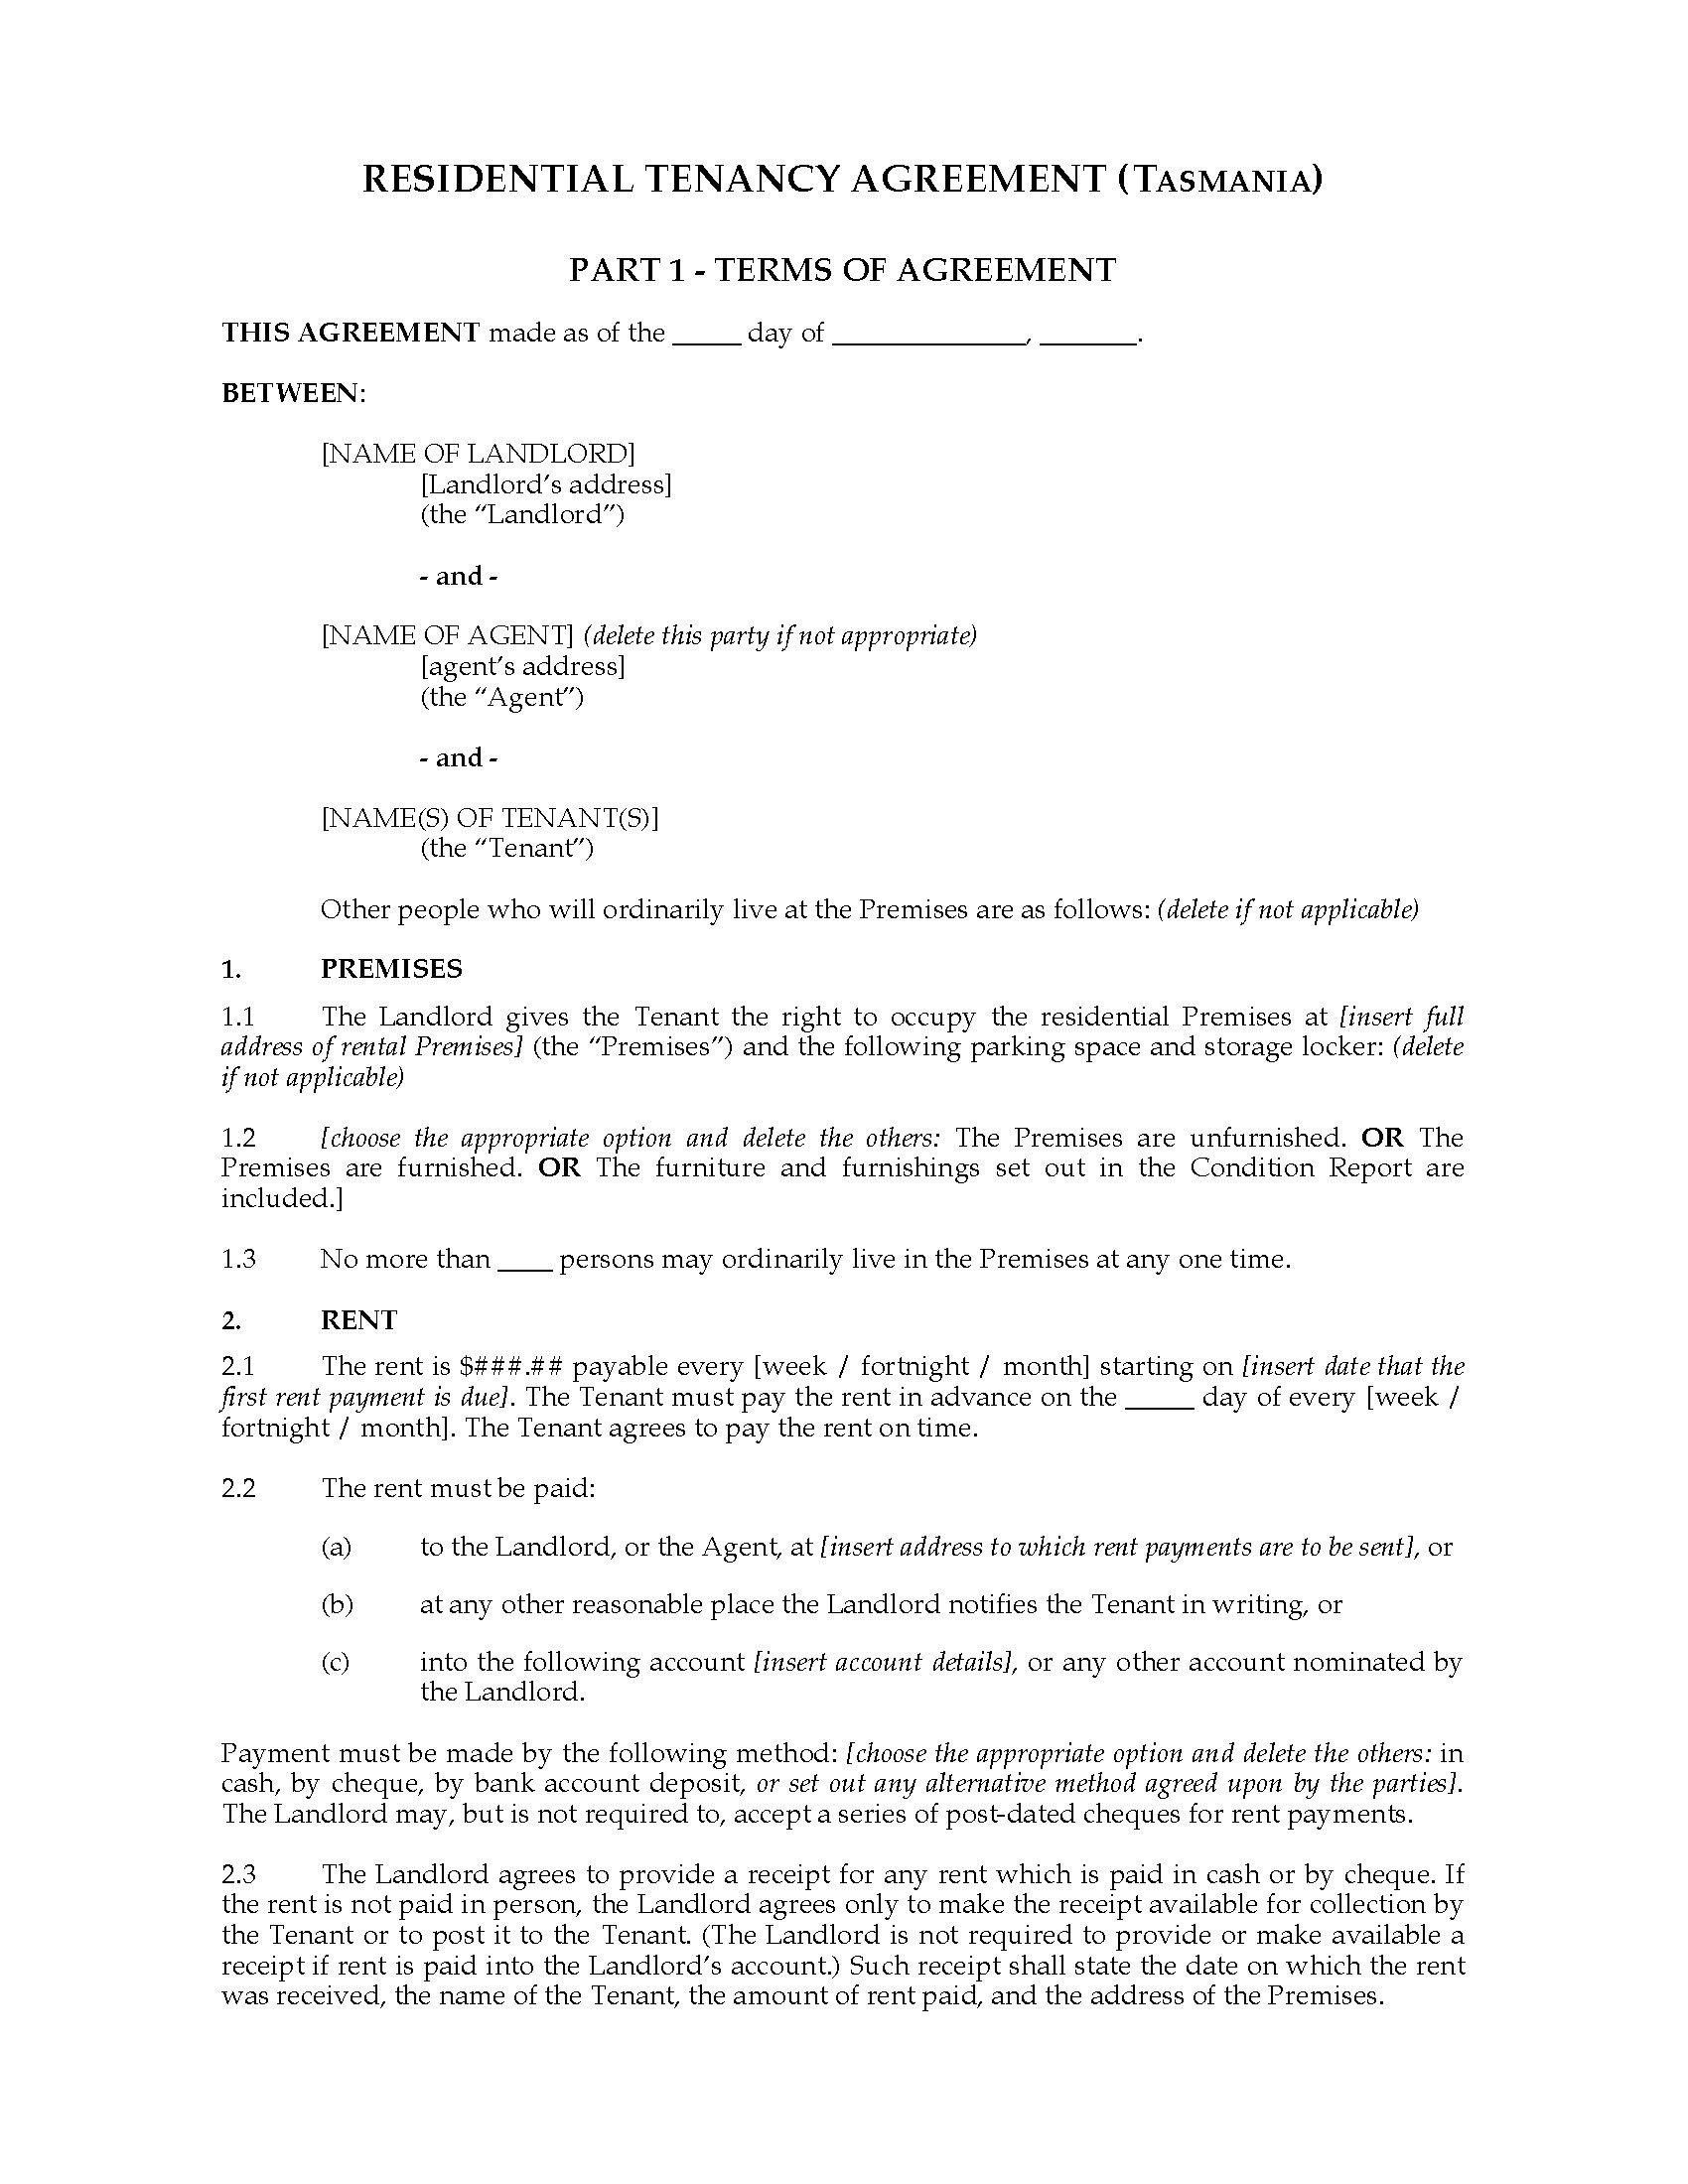 Contract For Sale Of Land Template Tasmania